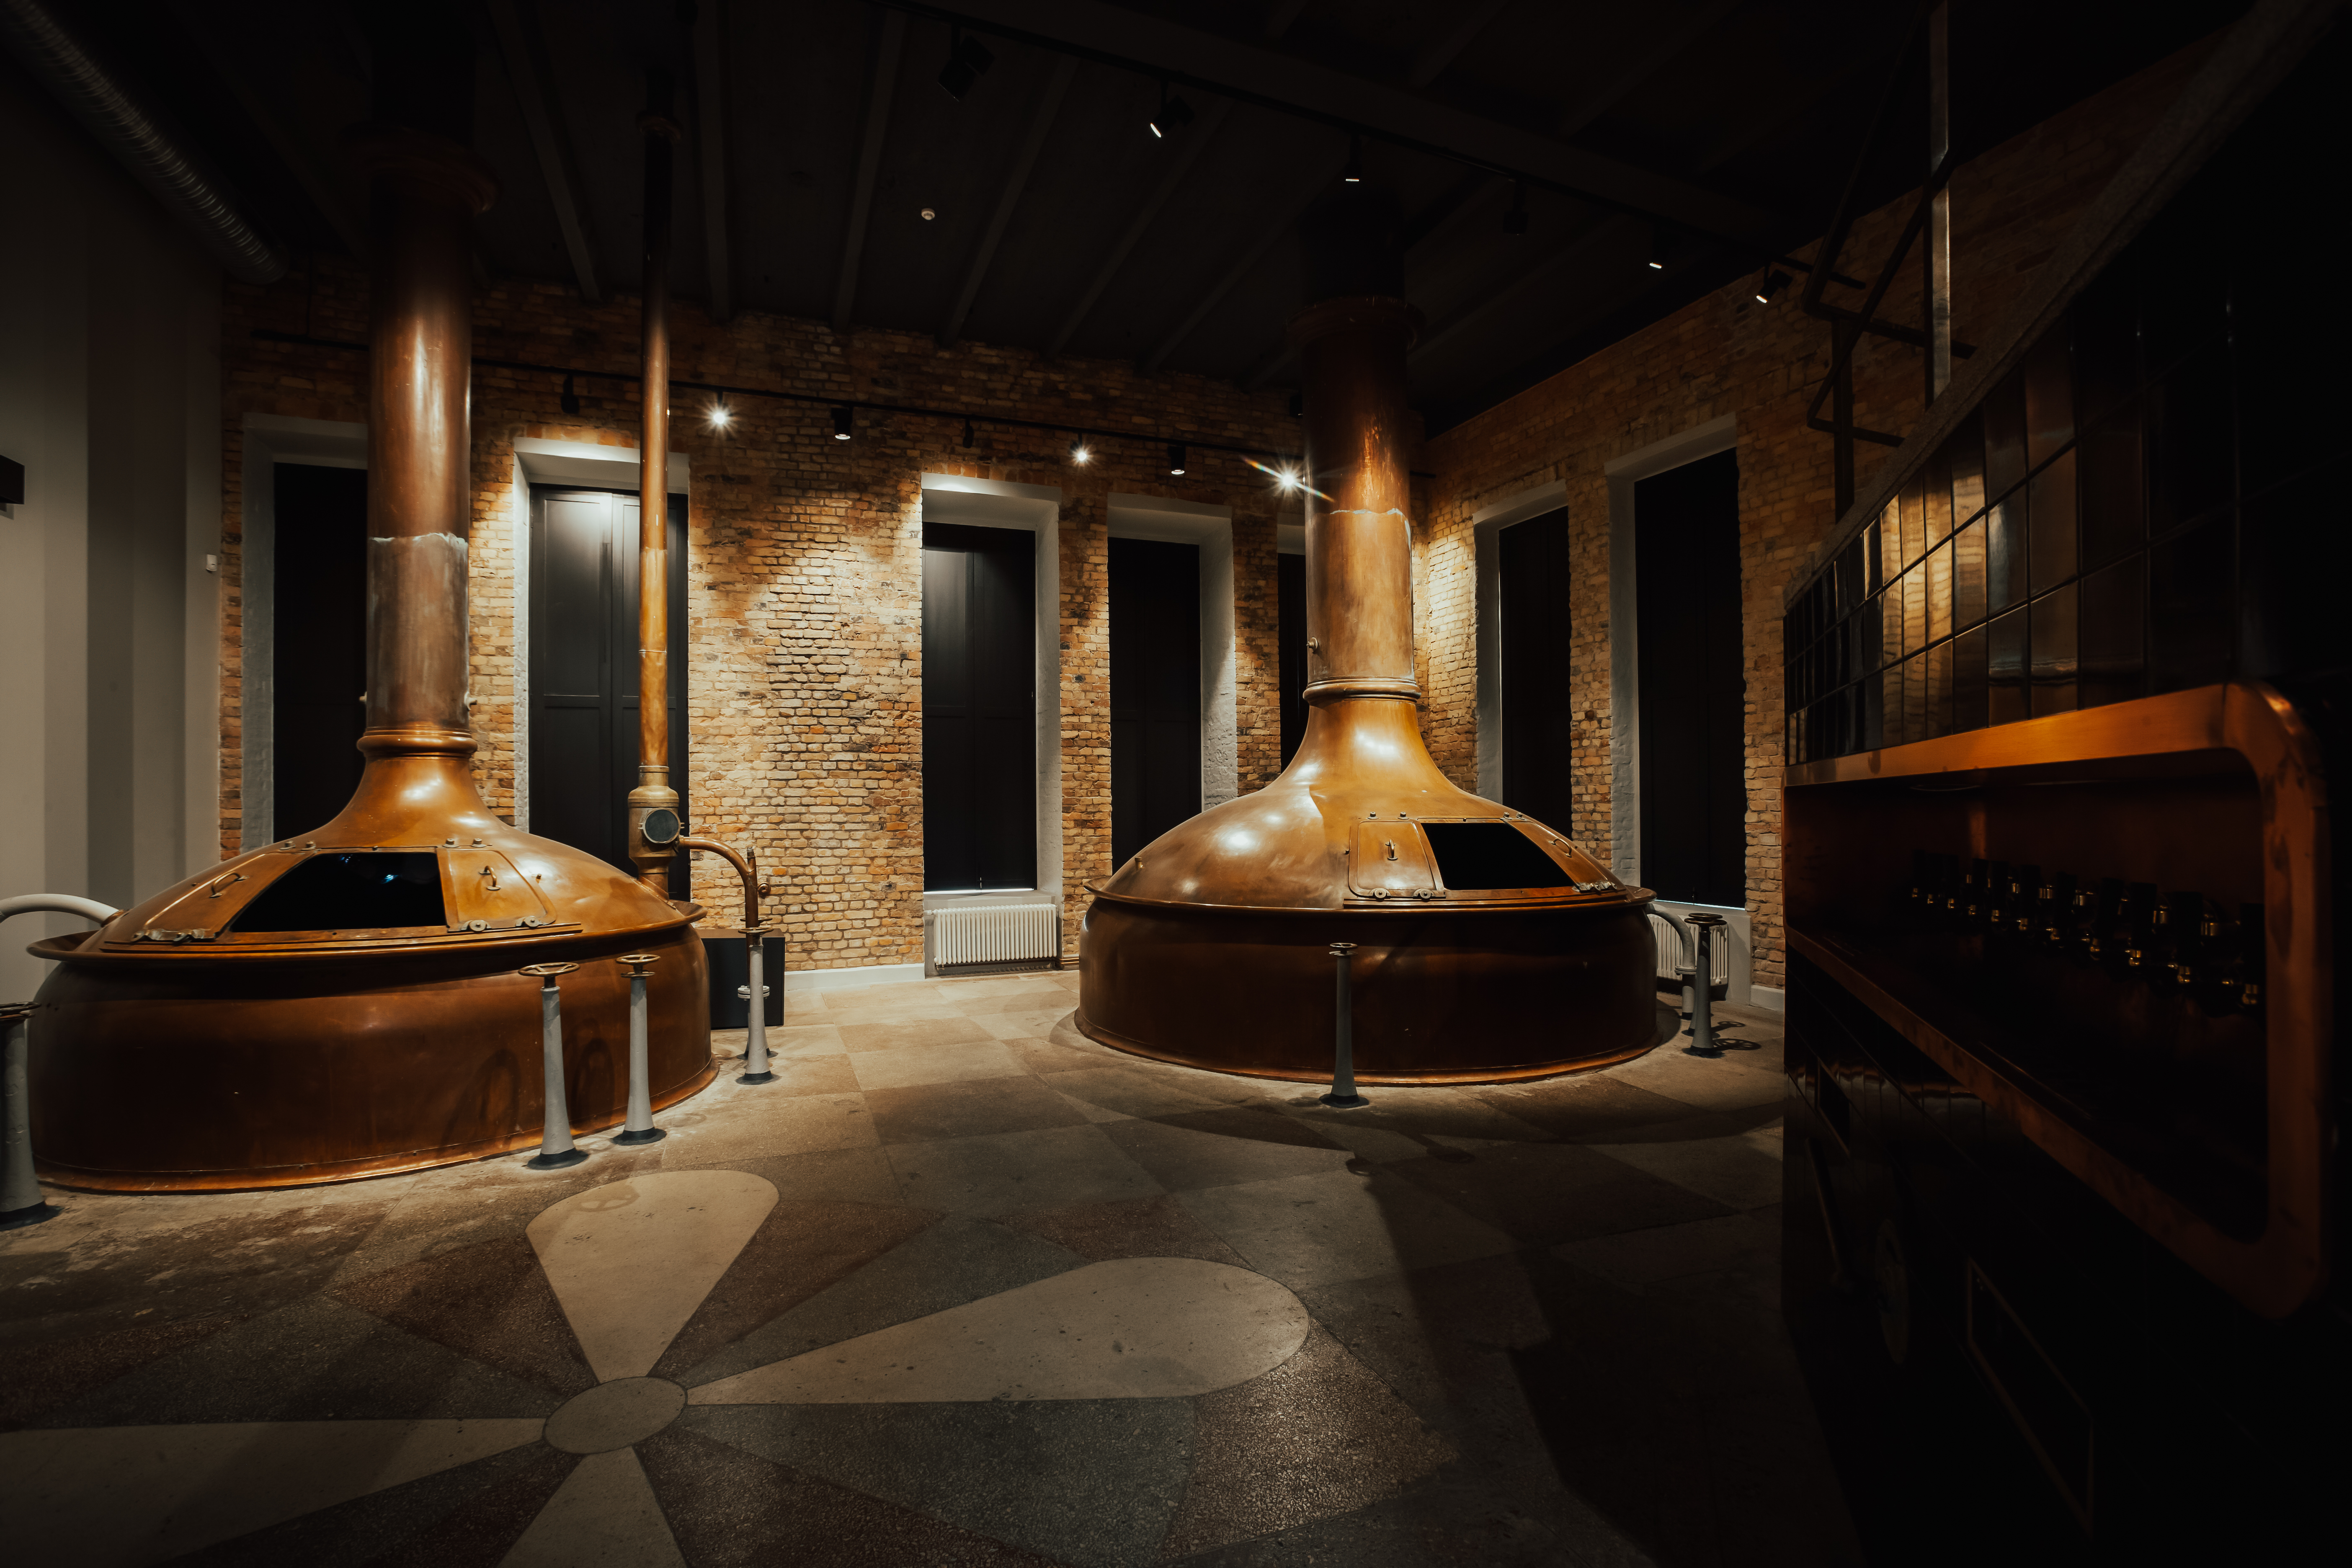 Beer Brewery Tour